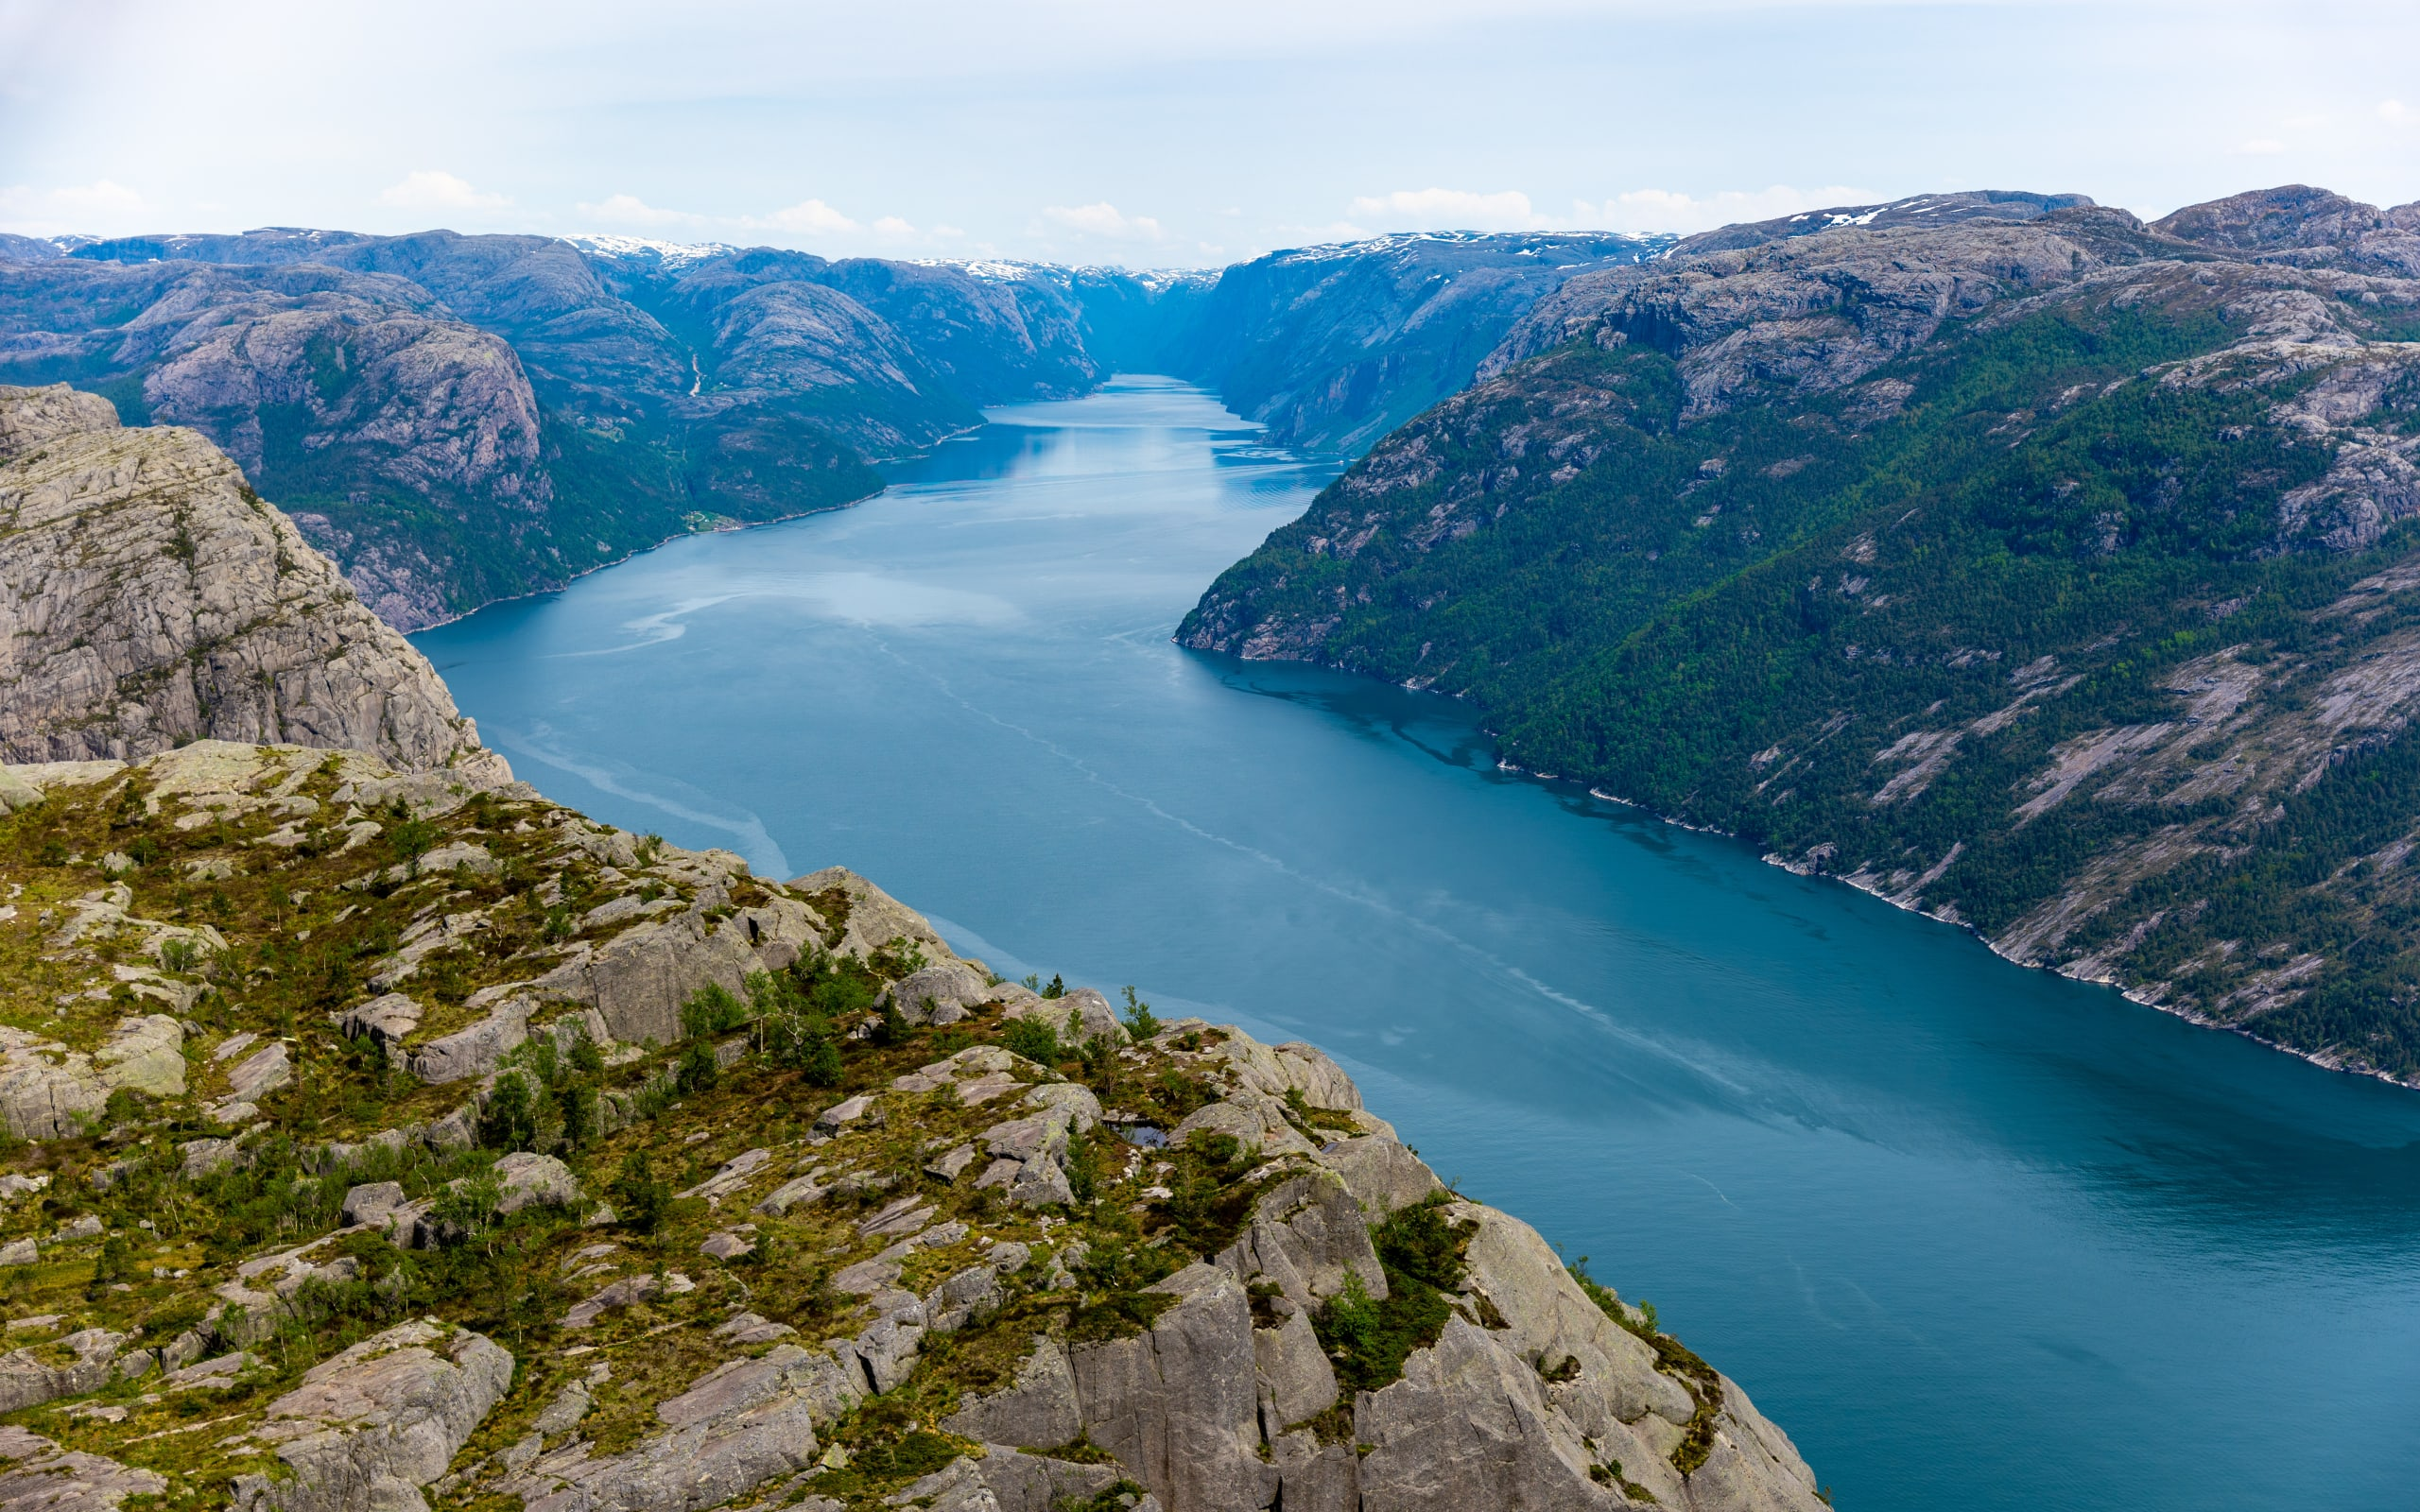 Views of Lysefjord from Preikestolen